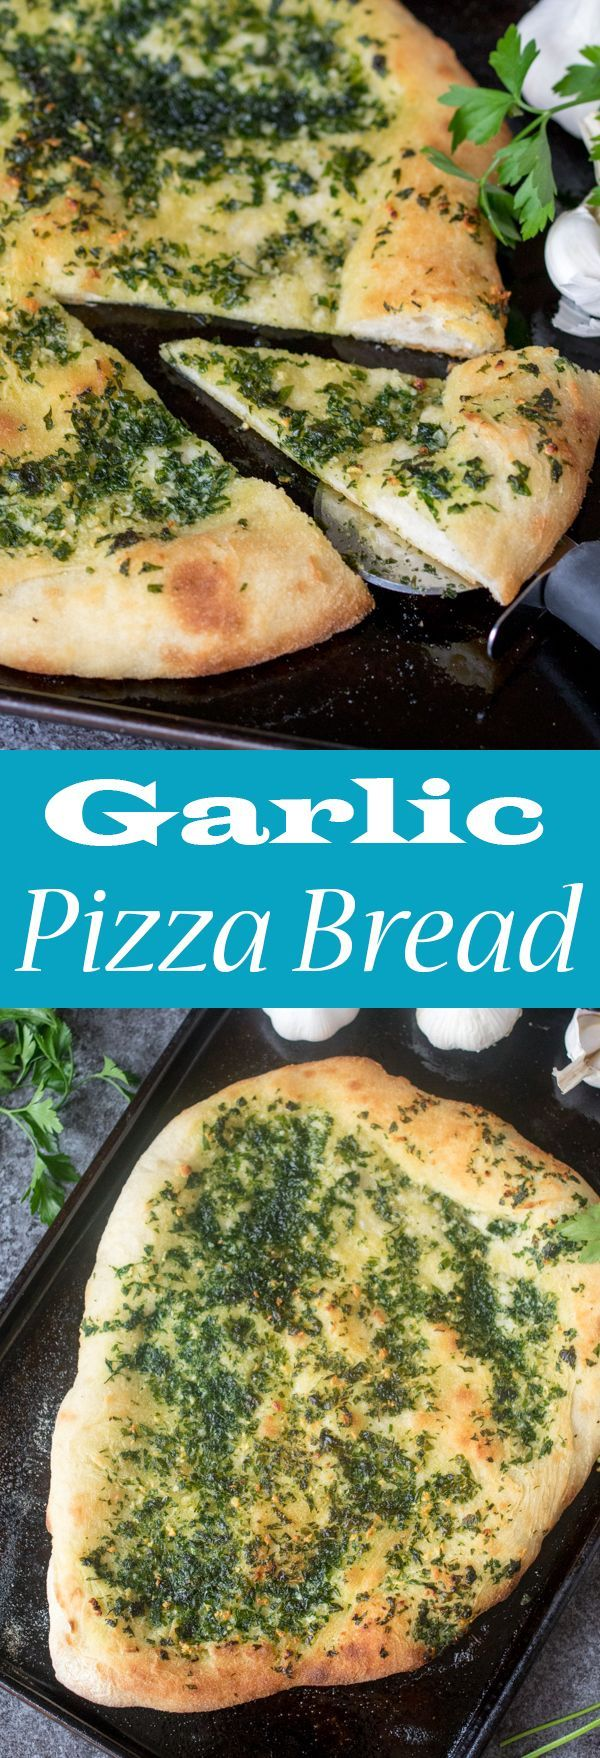 Garlic Pizza Bread ~ a crispy and chewy crust with a simple-but-delicious salty garlic and parsley topping!